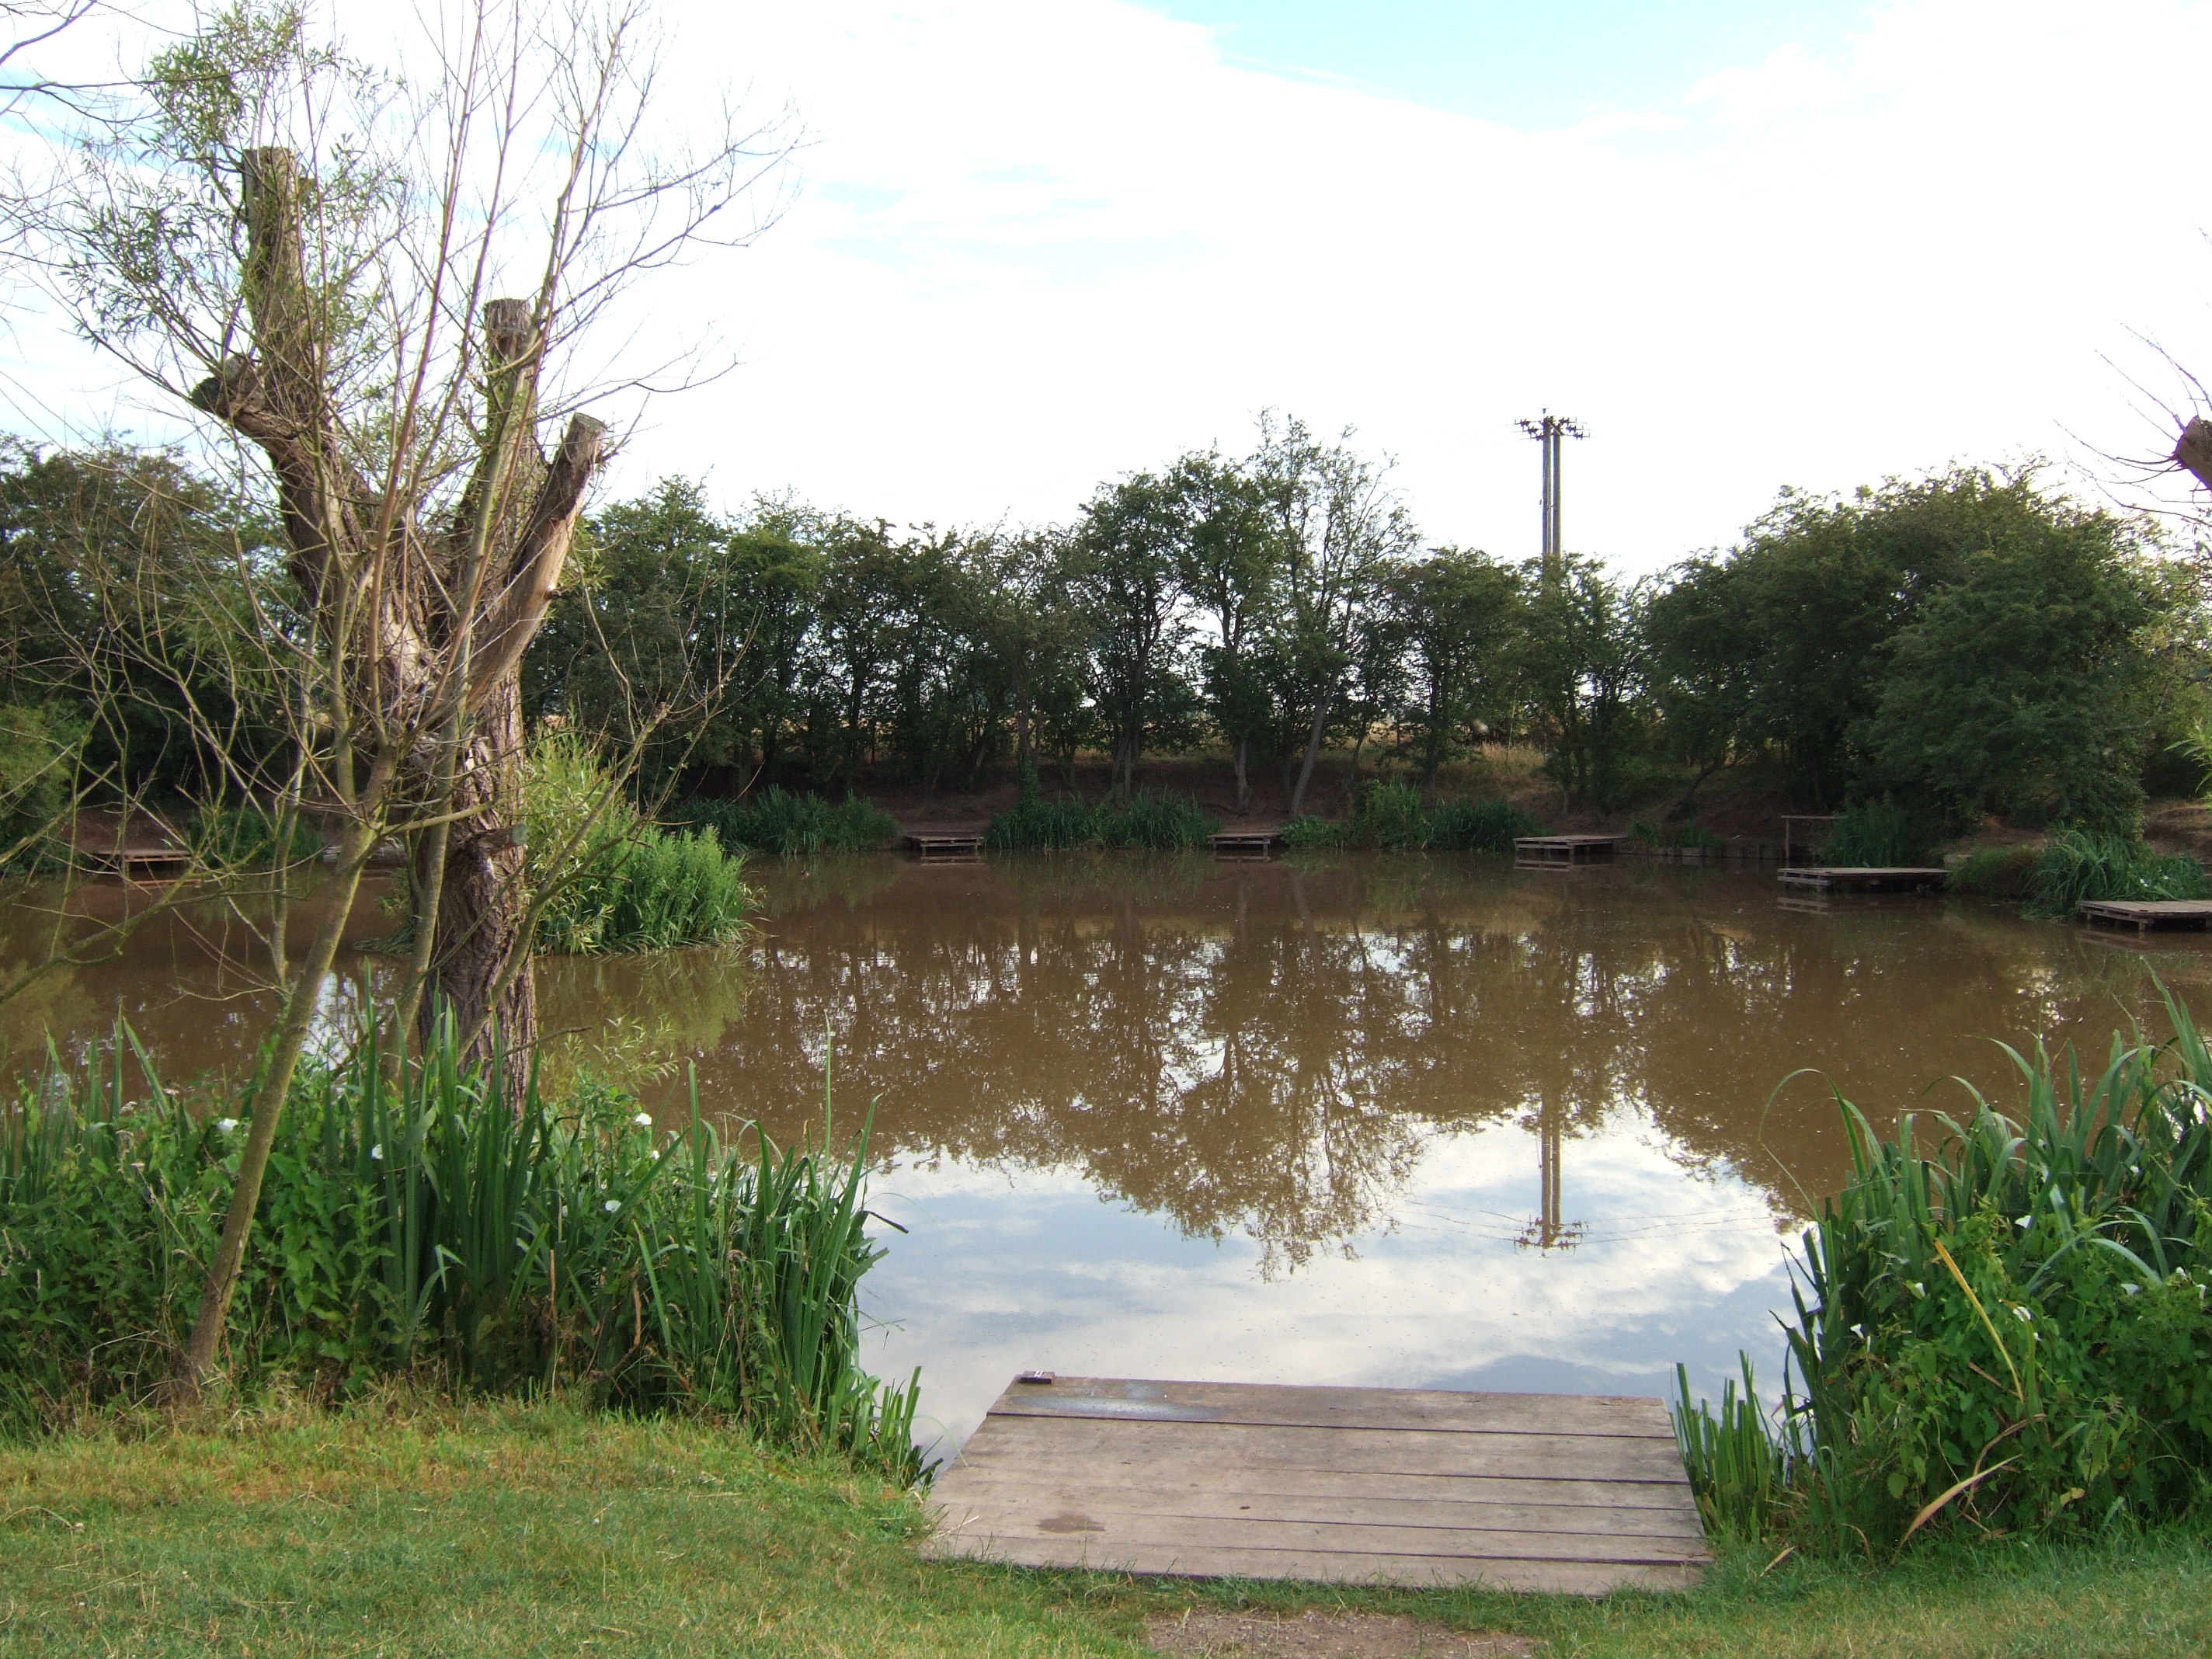 Pool house farm fishery middleton tamworth lake opening times and reviews for Reservoir swimming pool opening hours